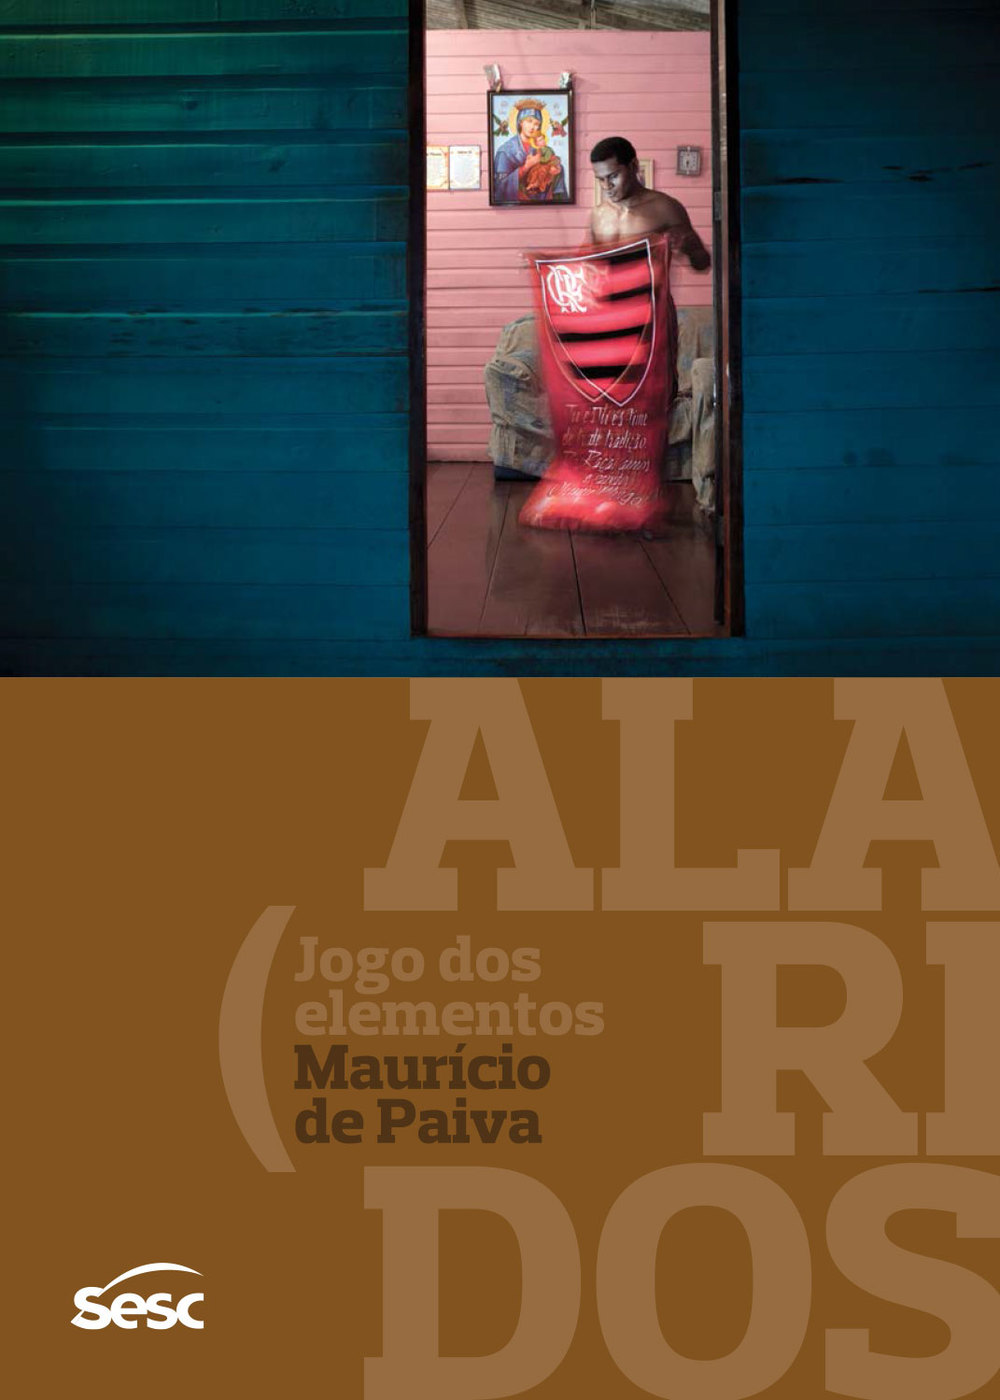 Catalogue design for the  Alaridos, jogo dos elementos  exhibition. | Sesc Itaquera, January-May 2015. Photo: Maurício de Paiva